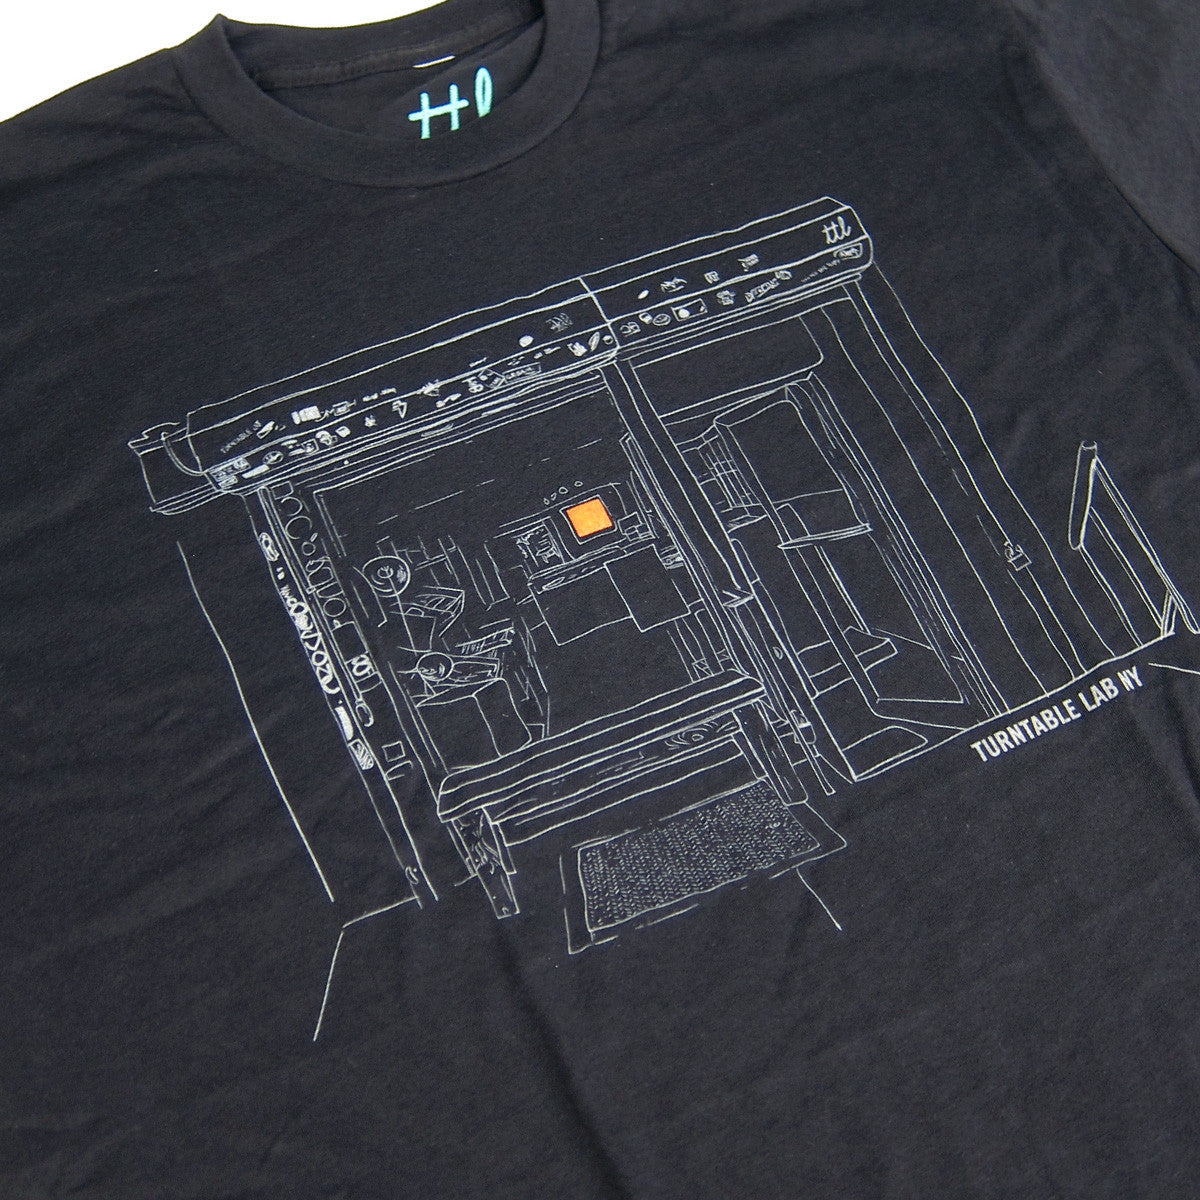 Turntable Lab: The Record Shop Shirt